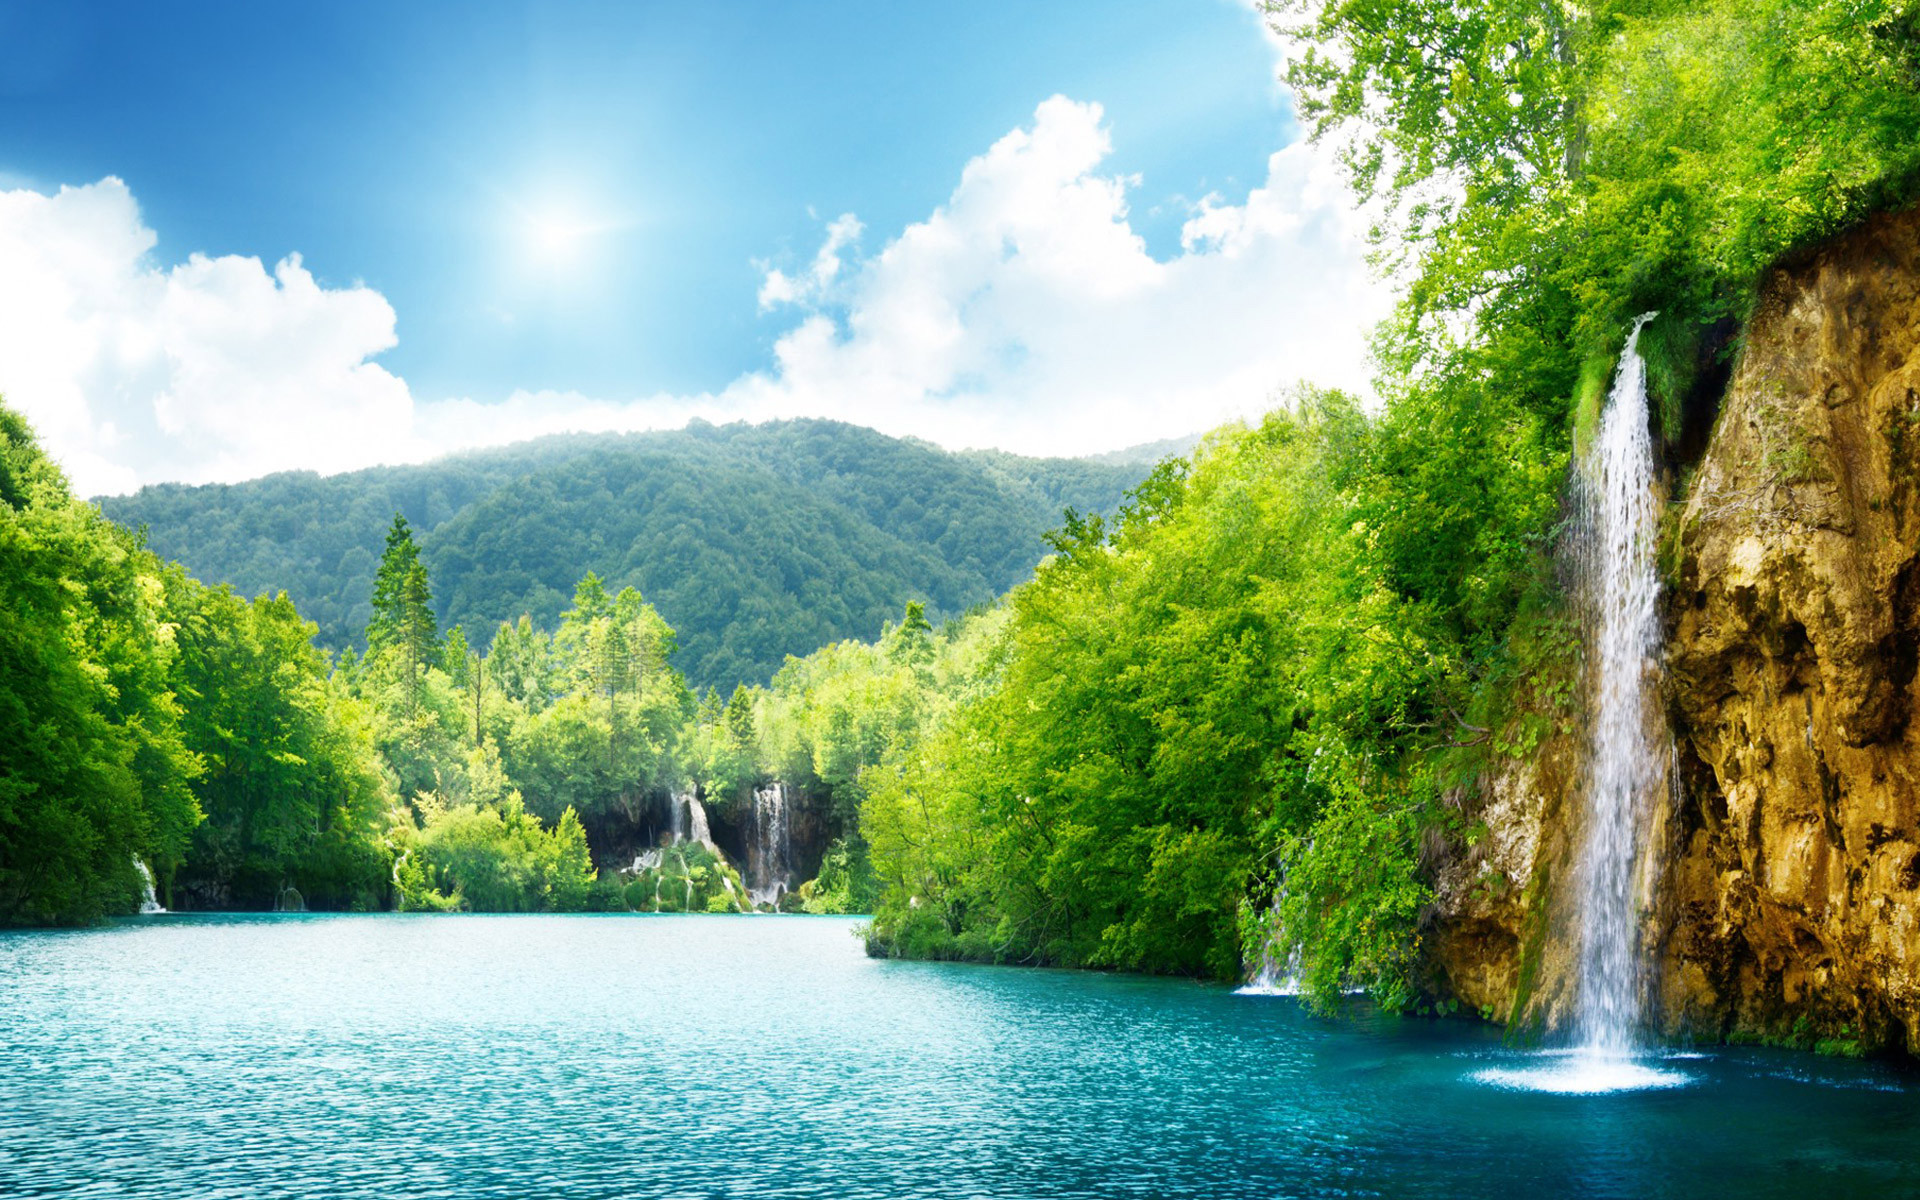 1920x1200 wallpaper nature: Nature Wallpapers For Pc (48+ Images